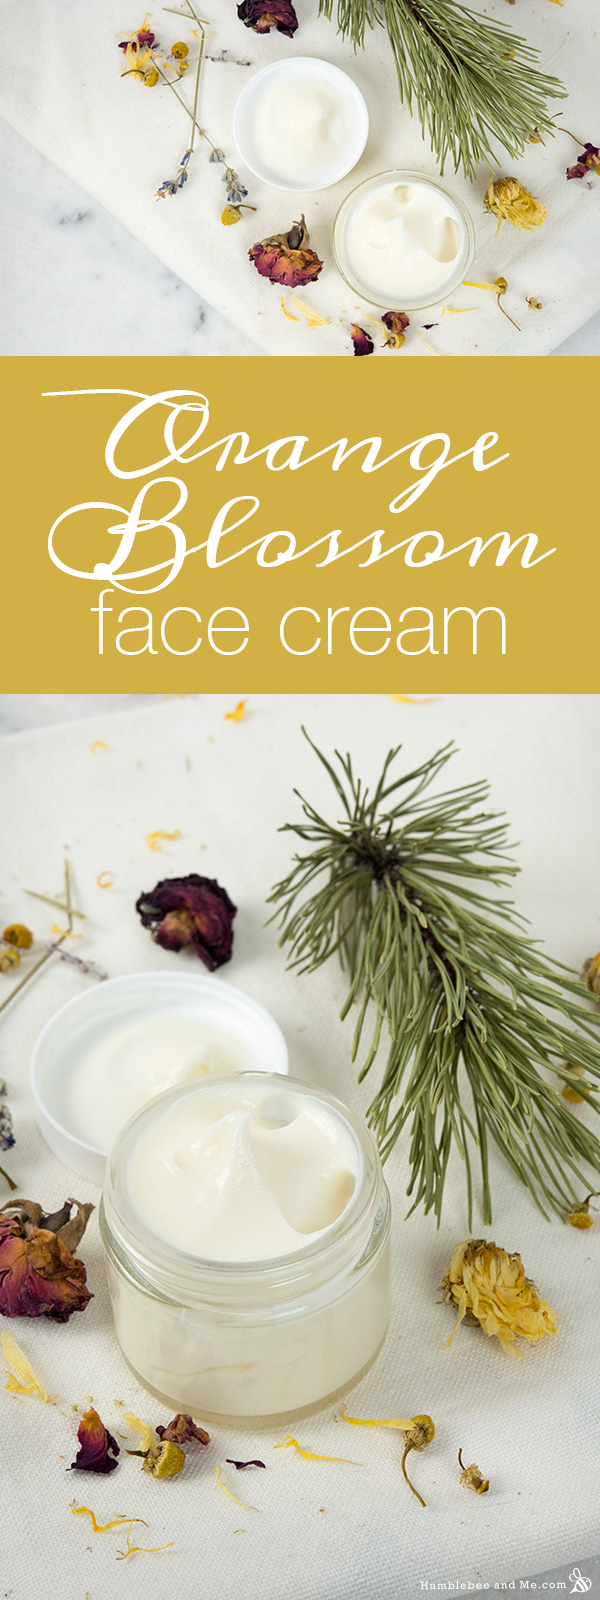 How to Make Orange Blossom Face Cream